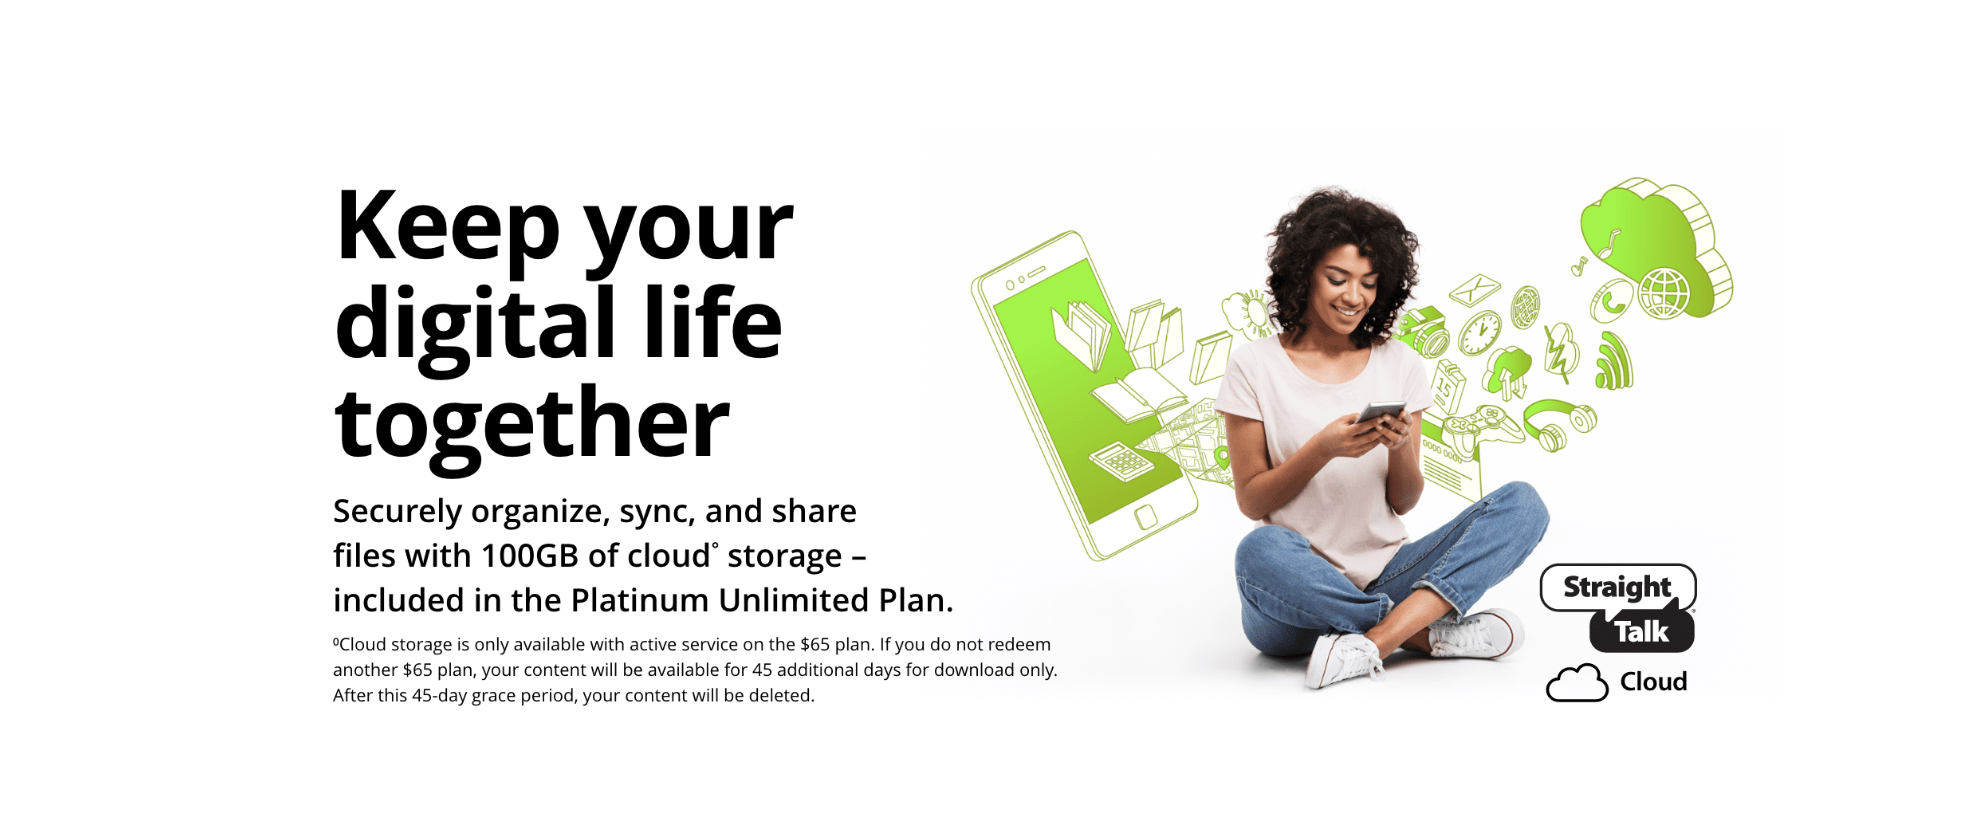 Keep your digital life together. Securely organize, sync, and share files with 100GB of cloud storage, included in the platinum unlimited plan. Cloud storage is only available with active service on the $65 plan. If you do not redeem another $65 plan, your content will be available for 45 additional days for download only. After this 45 day grace period, your content will be deleted.